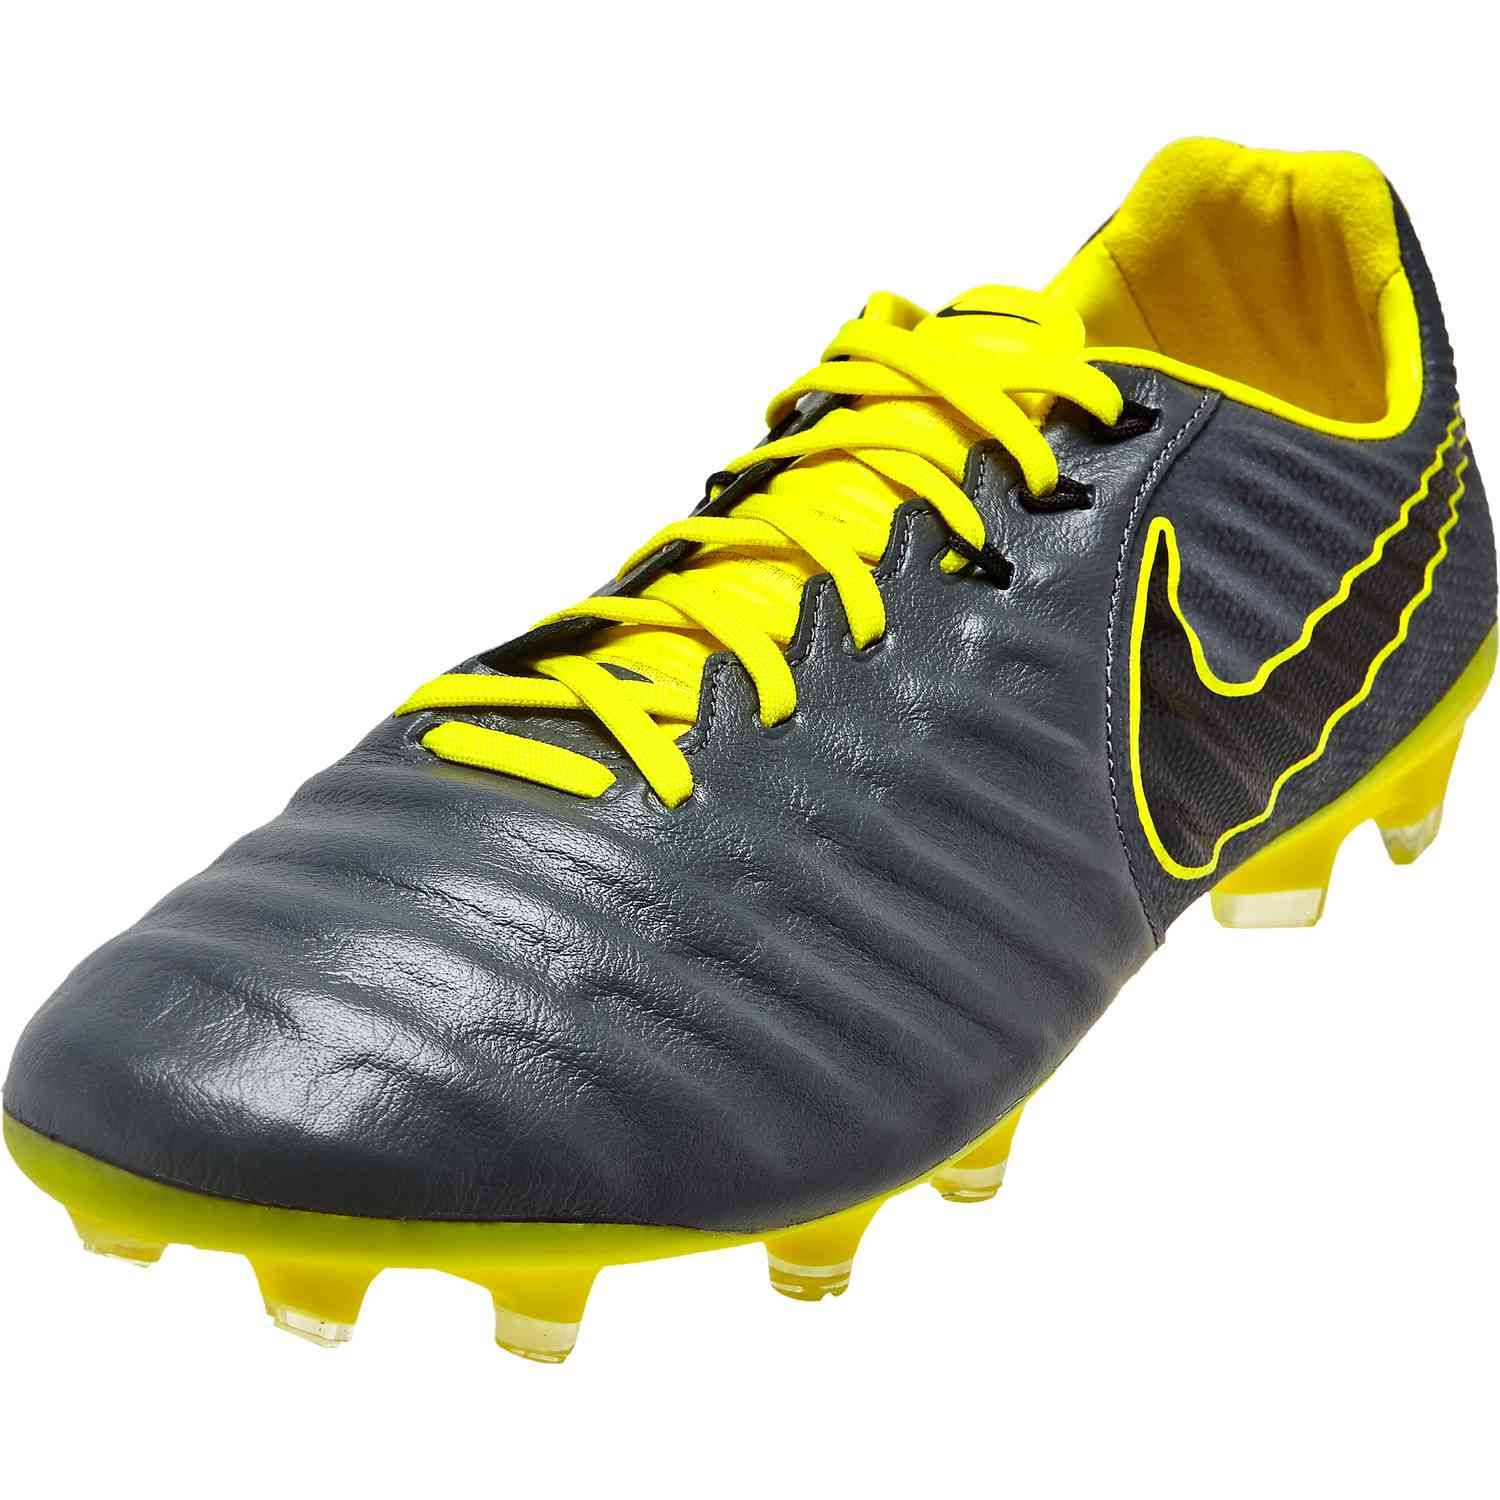 Nike Tiempo Legend 7 Pro Fg Game Over Nike Soccer Shoes Nike Football Cleats For Sale